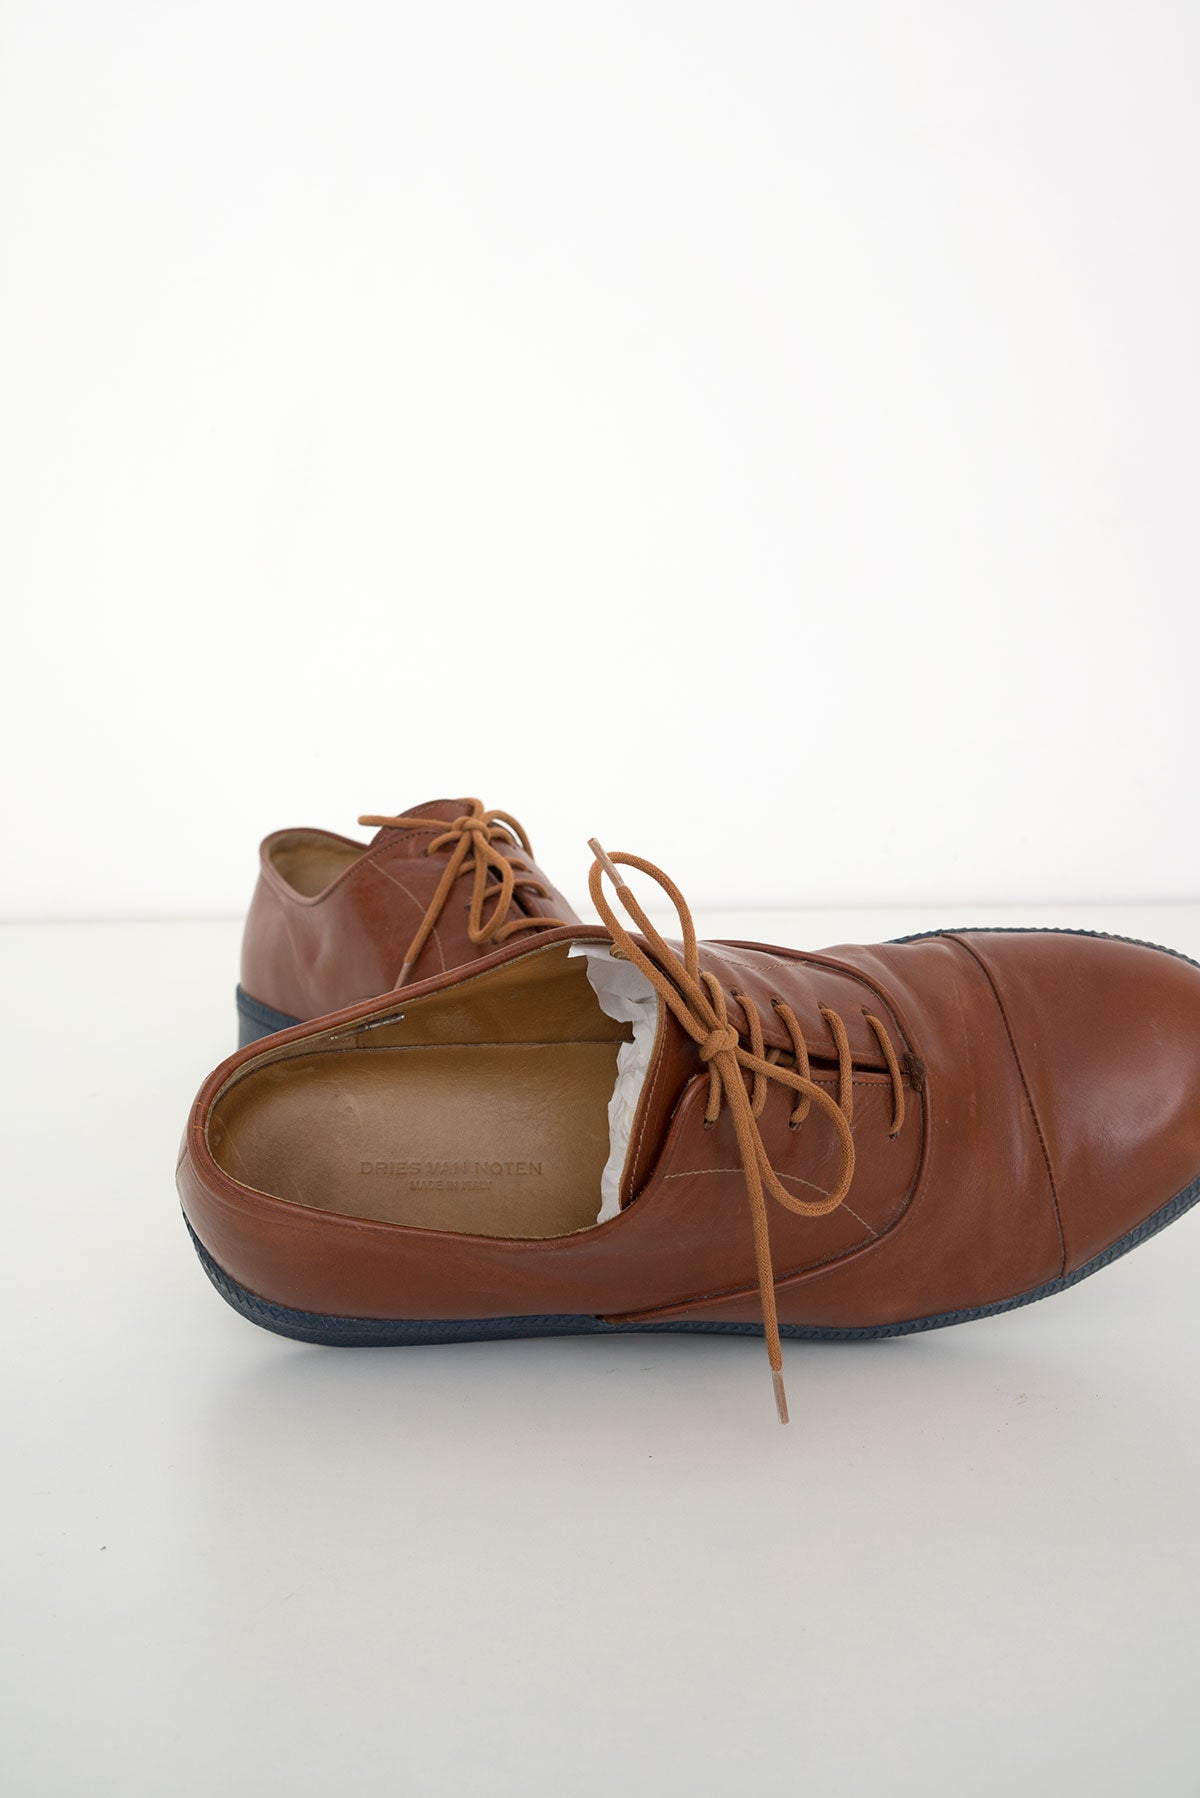 2008 A/W CONTRASTING SOLE DERBY SNEAKERS